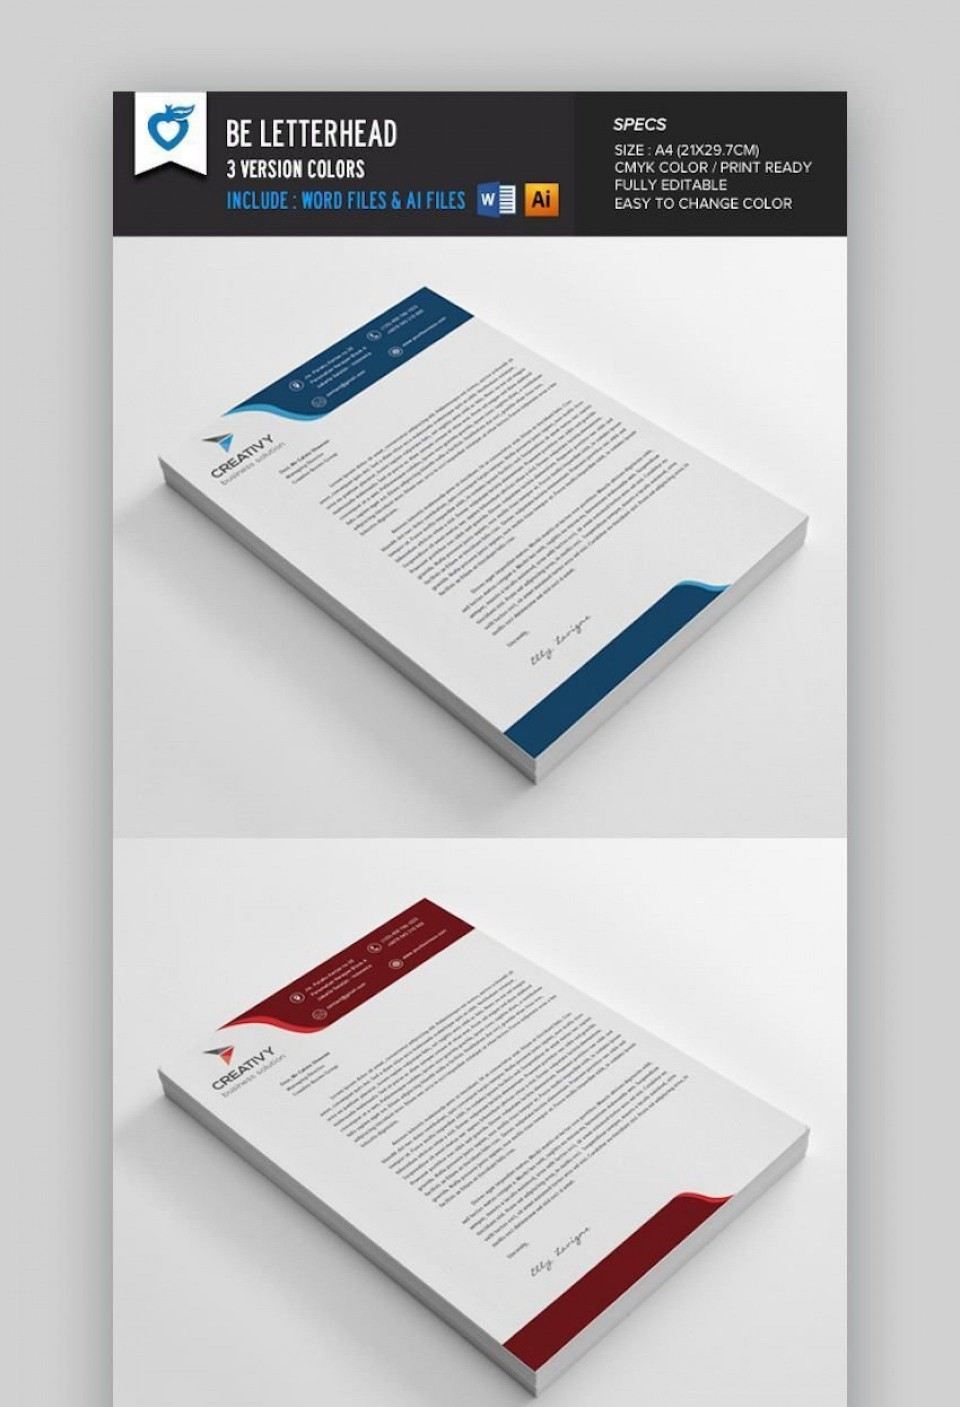 008 Excellent Letterhead Template Free Download Ai Picture  File960